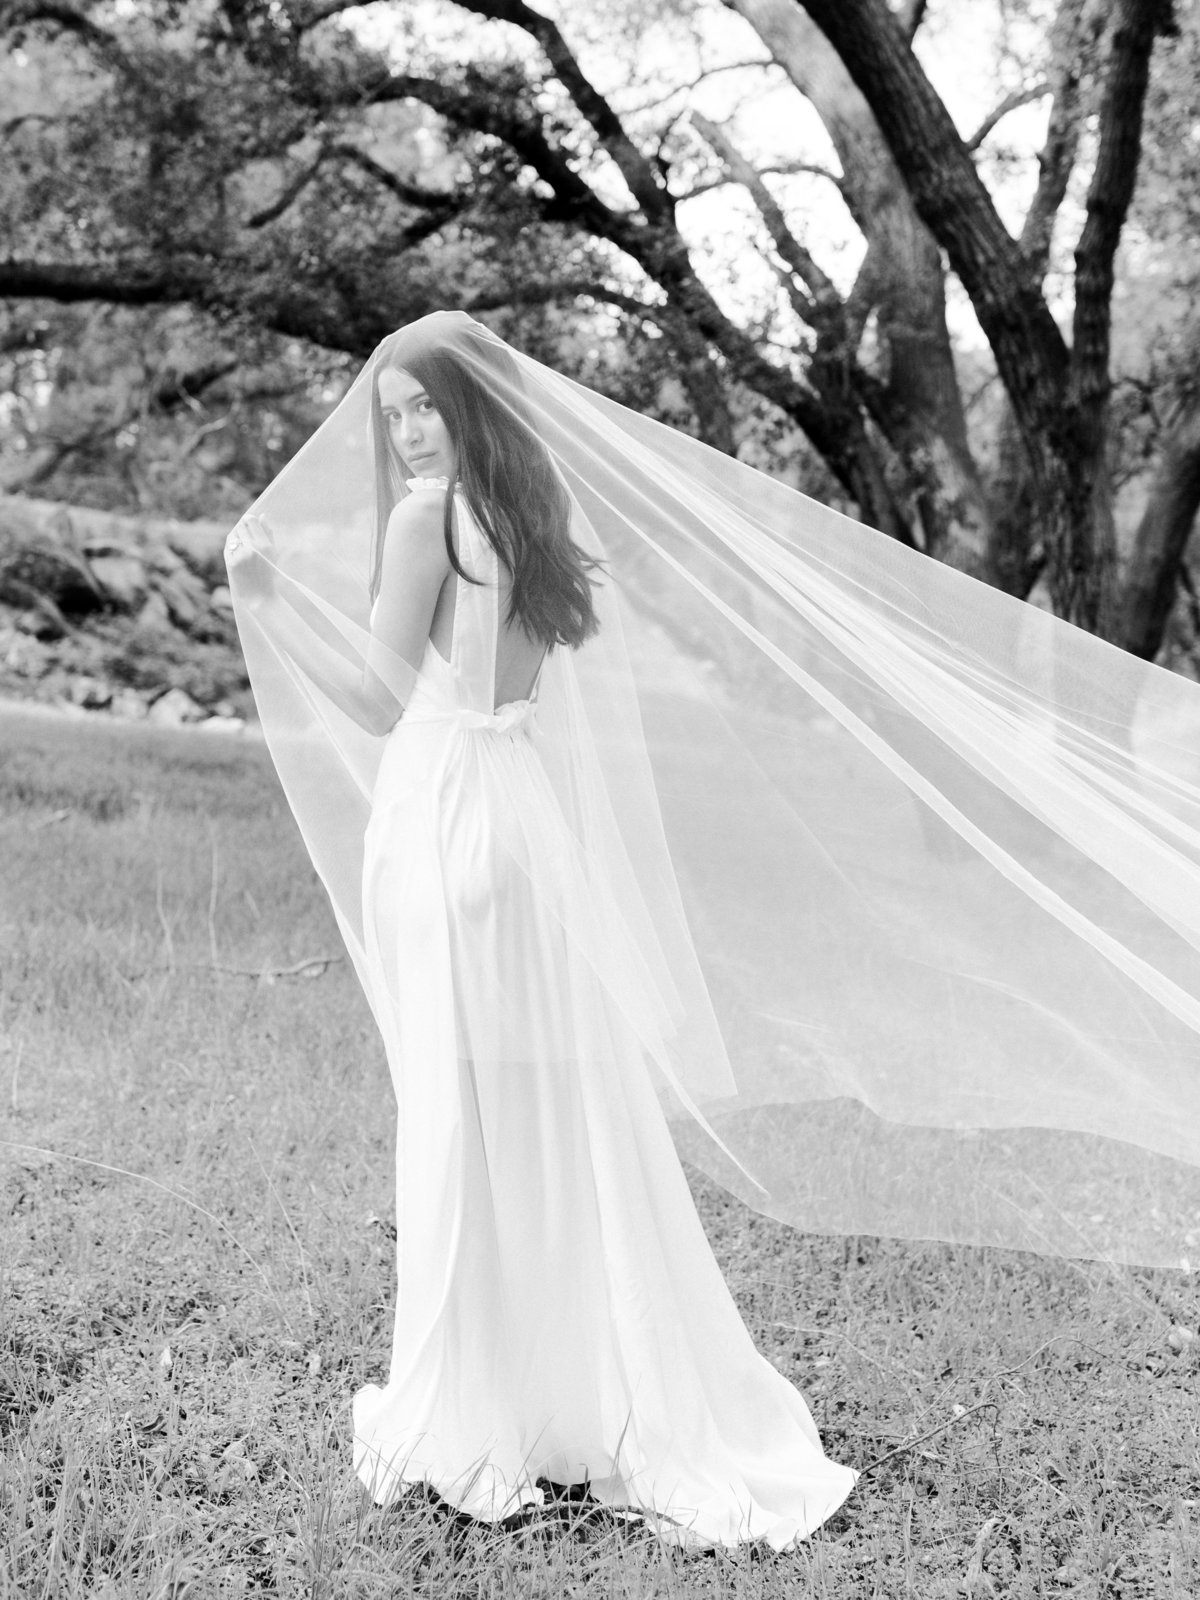 Babsie-Ly-Photography-Fine-Art-Film-Wedding-Bridal-Editorial-in-Hidden-Oaks-San-Diego-084